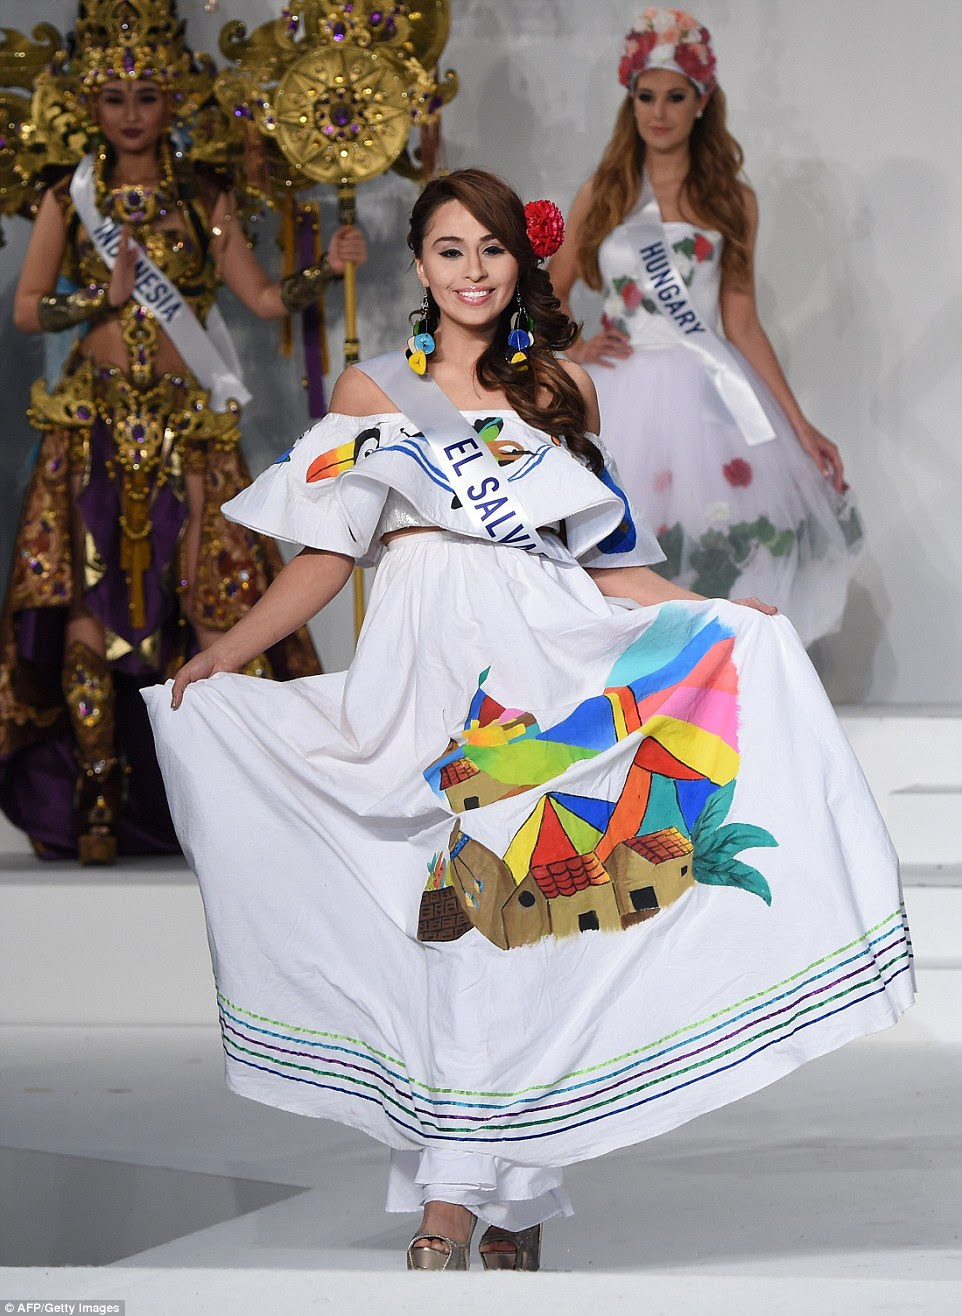 El Salvador kept things simple with Eugenia Avalos wearing a white cotton dress depicting vibrant scenes of a classic country landscape, as well as pottery and a colourful toucan